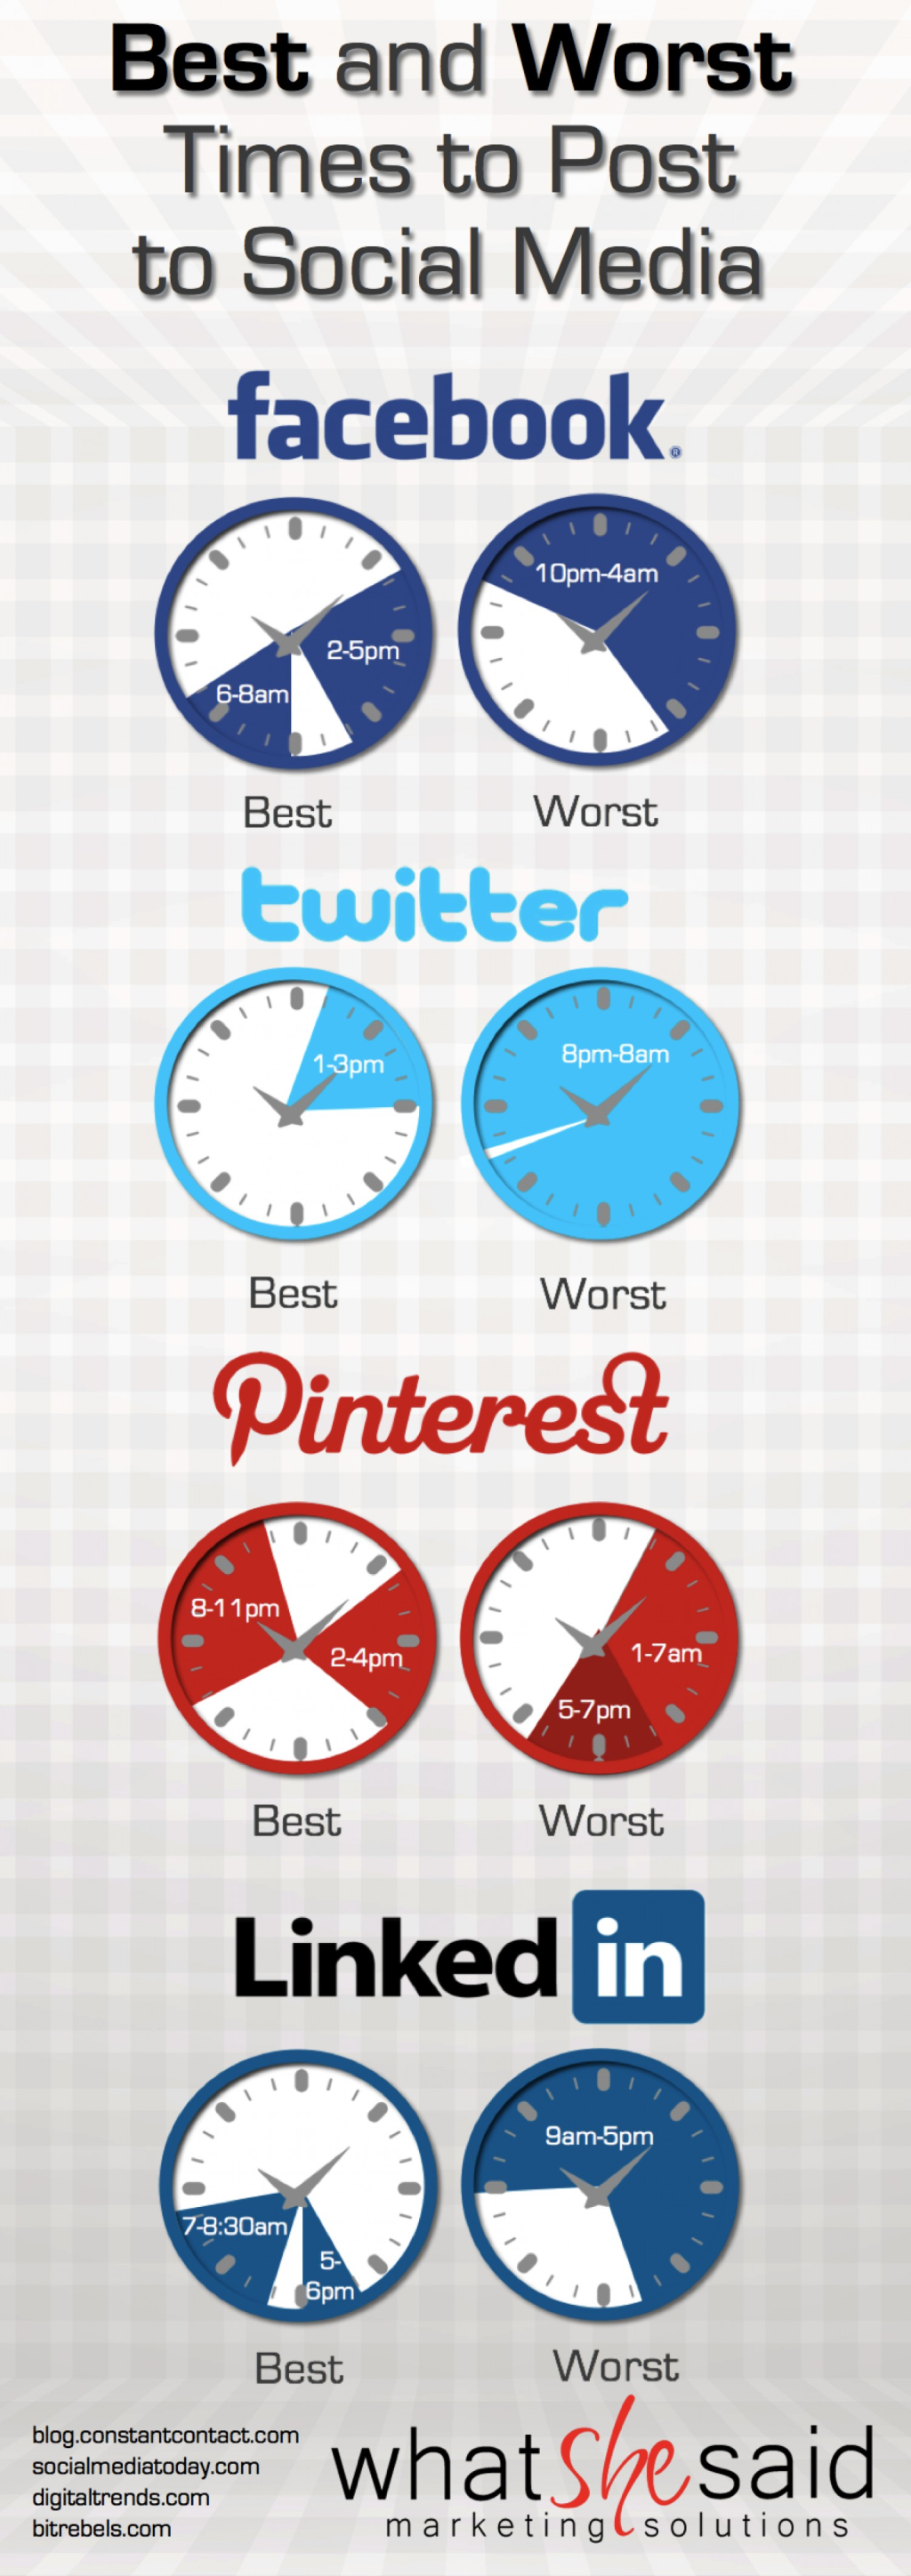 Best and Worst Times to Post to Social Media